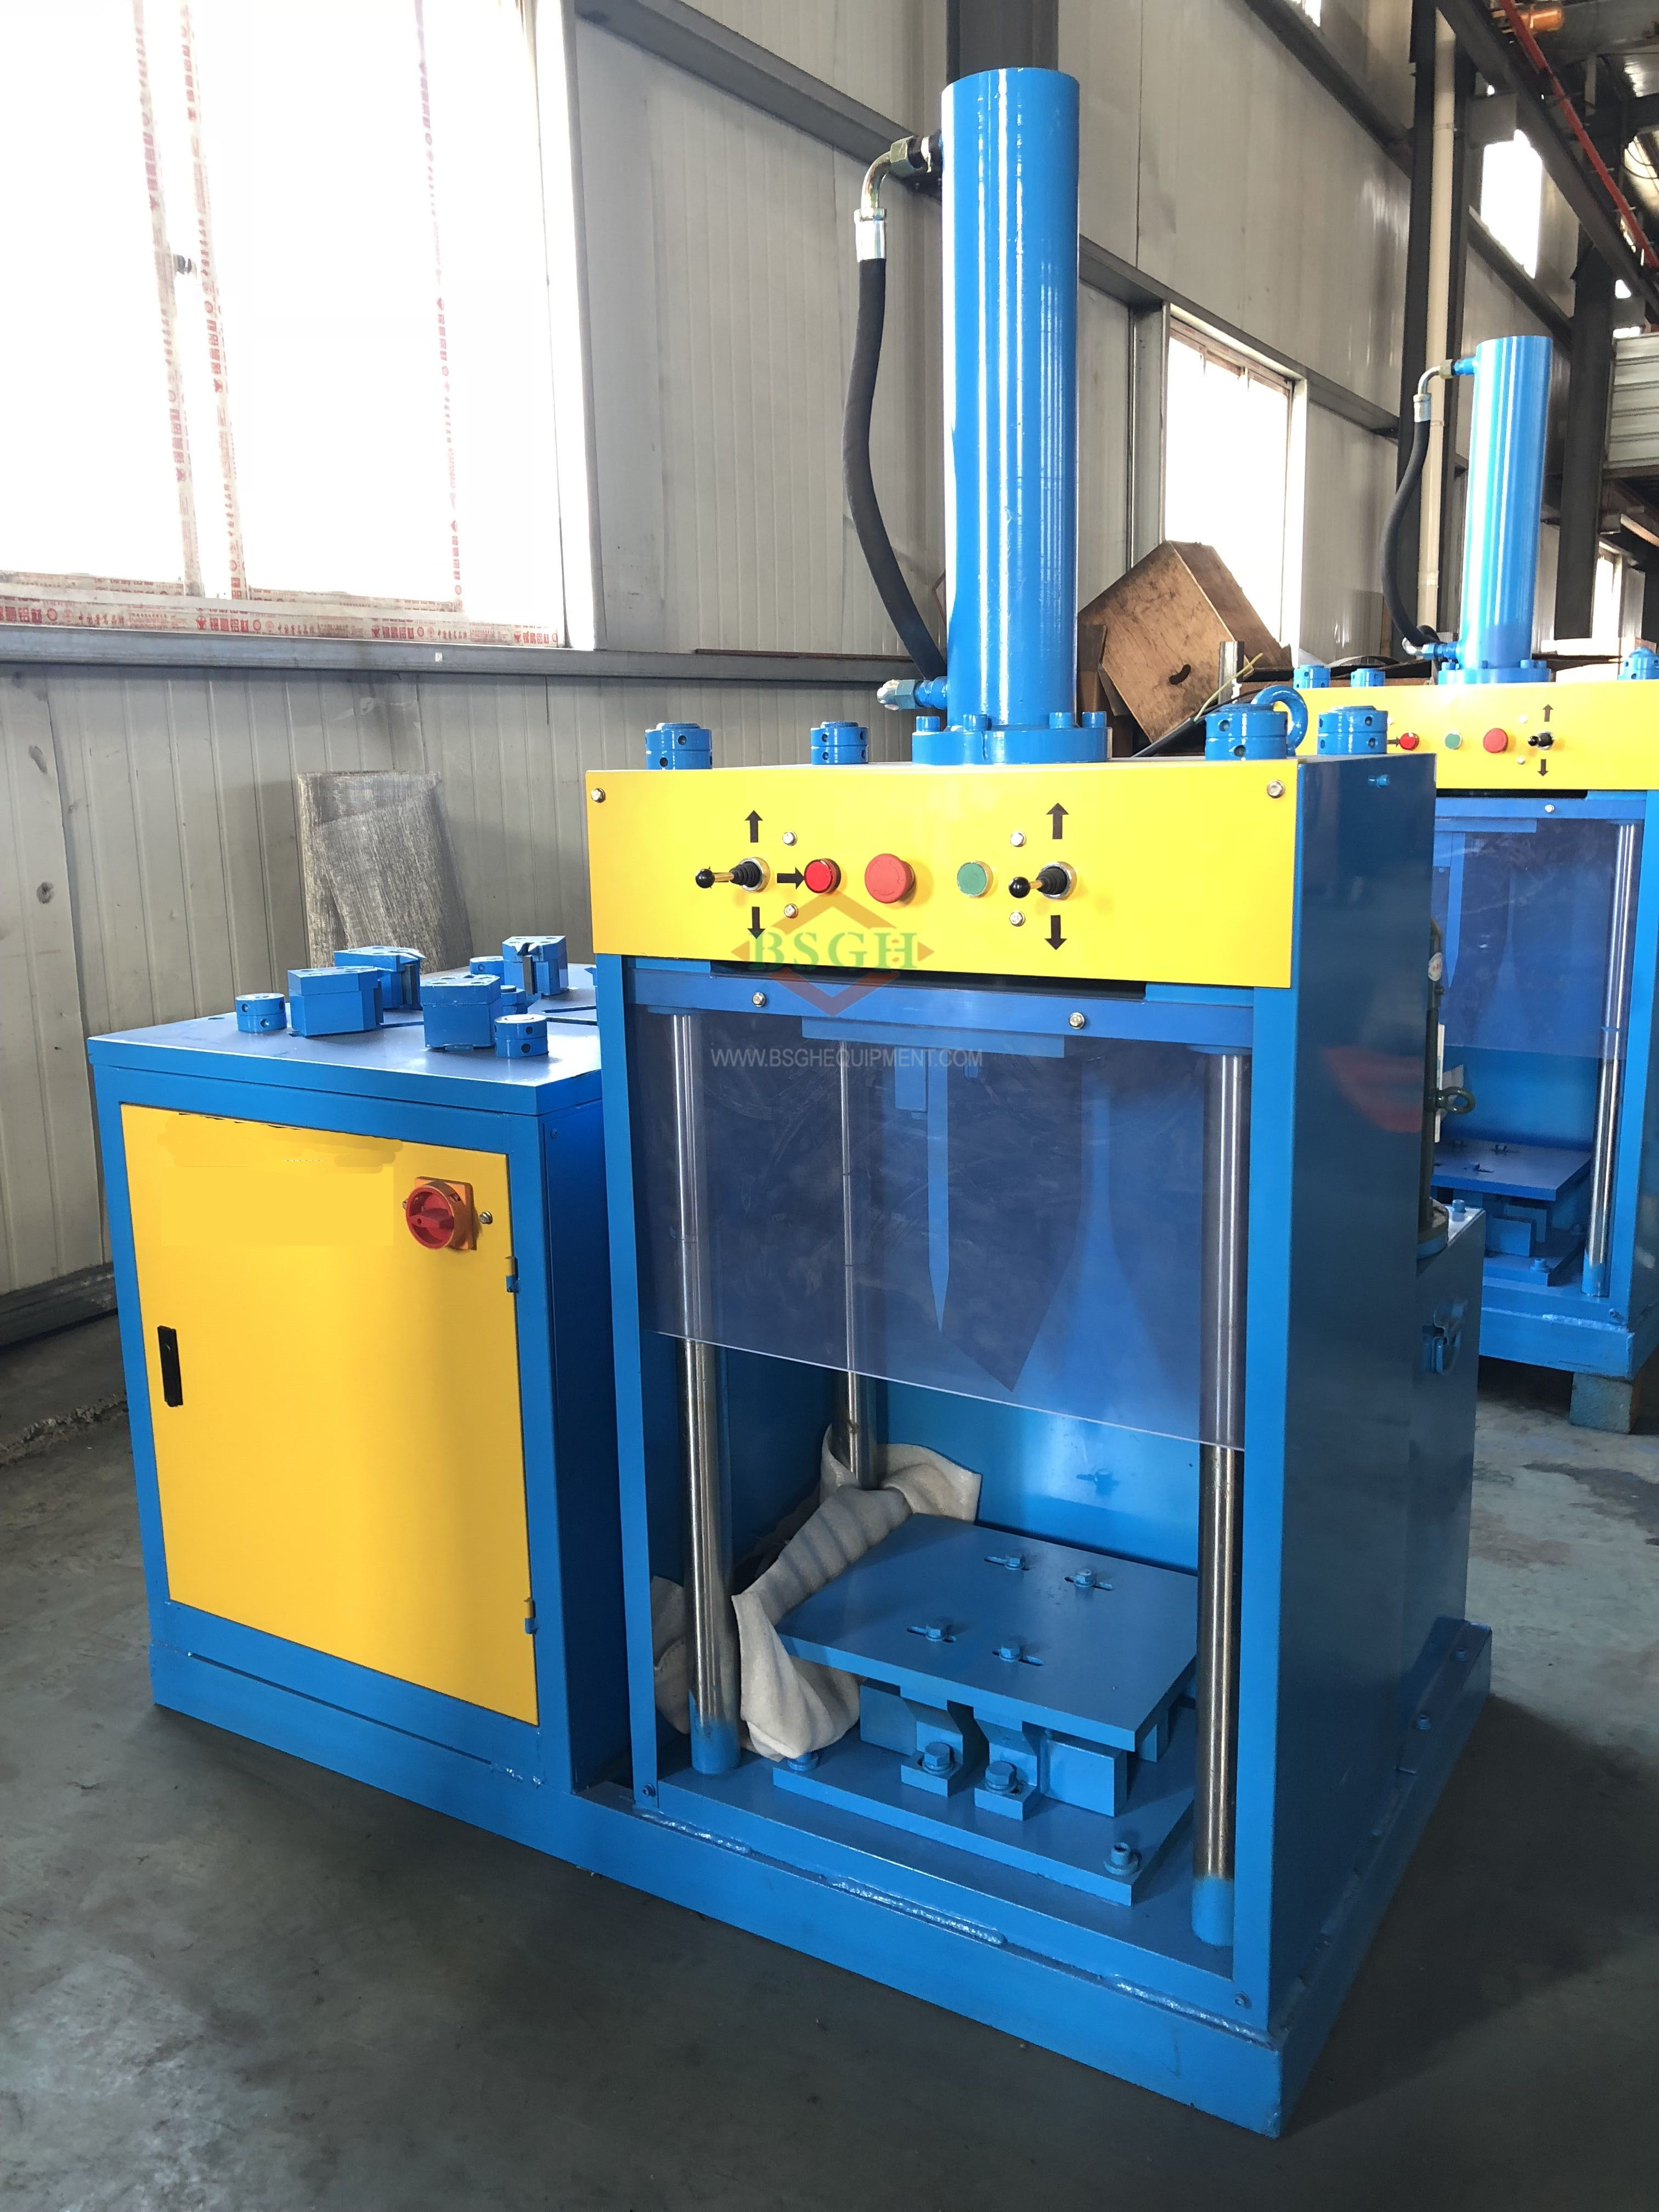 Automatic Motor Recycling Machine St 400 In 2020 Recycling Machines Recycling Machine